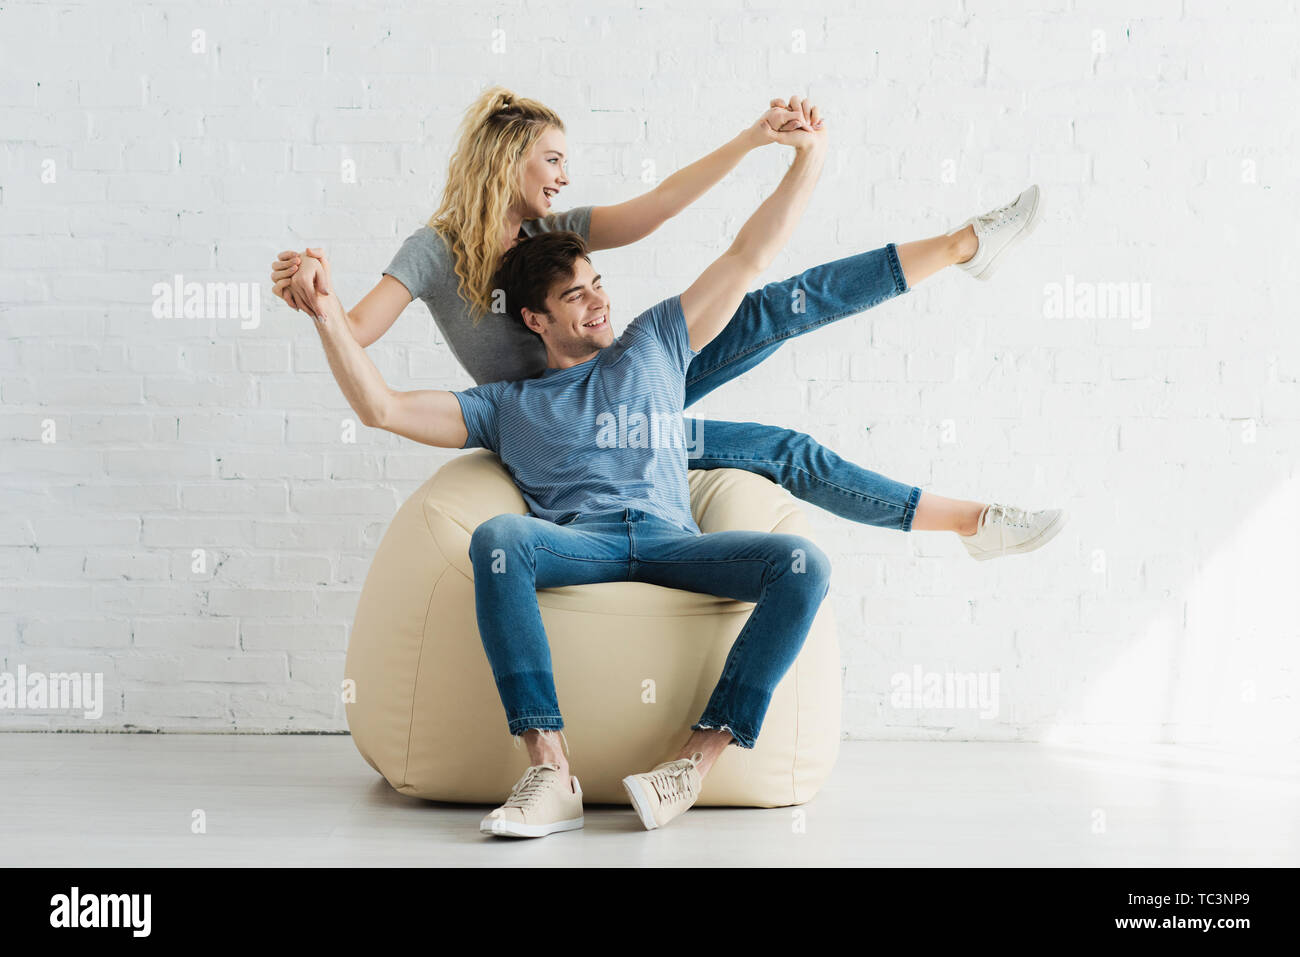 cheerful blonde girl and happy man holding hands while sitting on bean bag chair - Stock Image